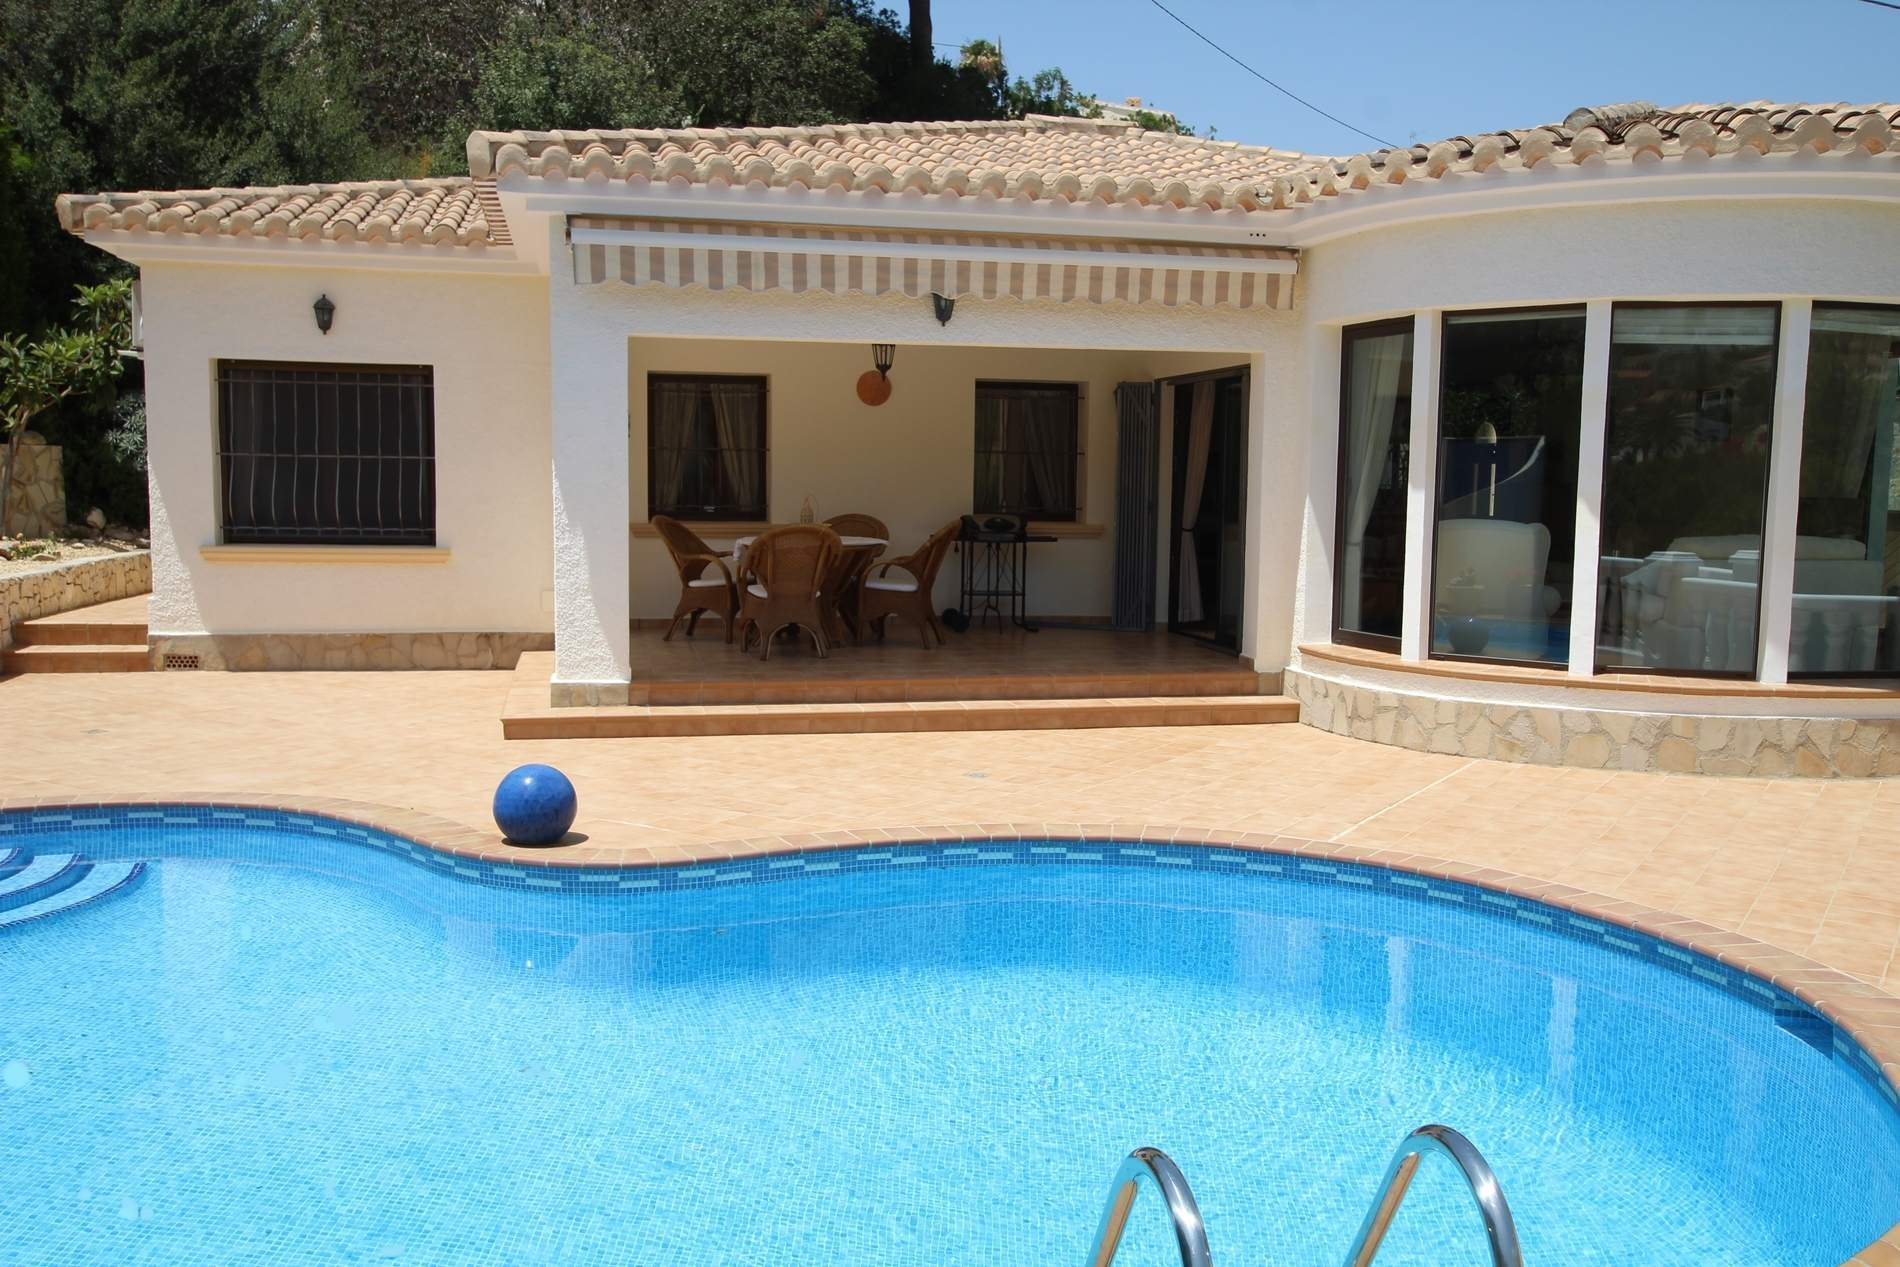 2 Bedroom Villa in Benissa Costa